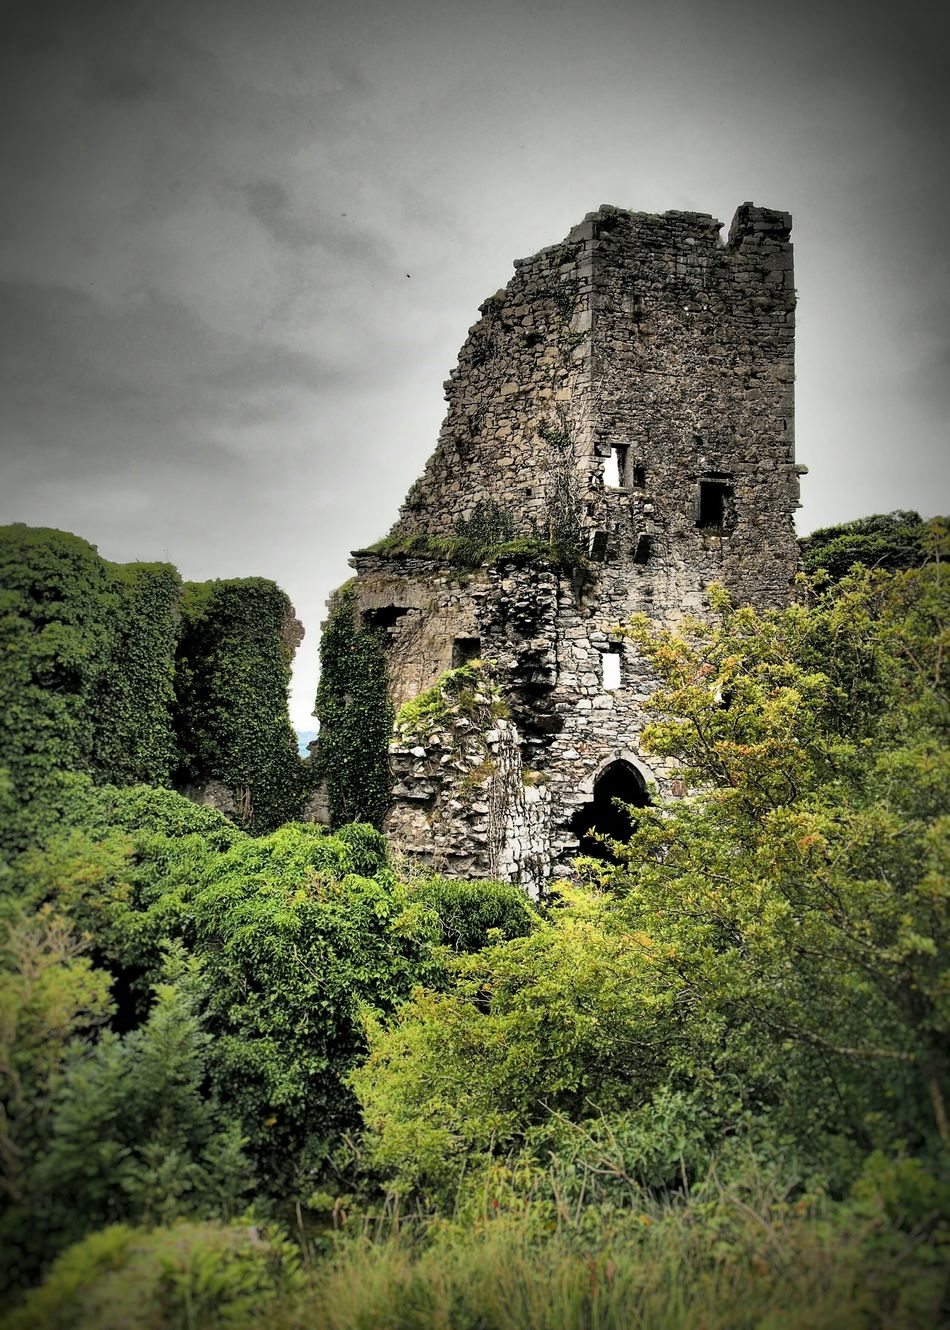 Carrigogunnel Castle County Limerick Ireland Castle Castle Ruin Built Structure History Tower Stonework Destroyed Building Demolished Historic Siege Stone Overgrown Green Color Growth Outdoors Damaged Old The Past Trees Day Defensive Structure Eyemphotography Eyem Best Shots